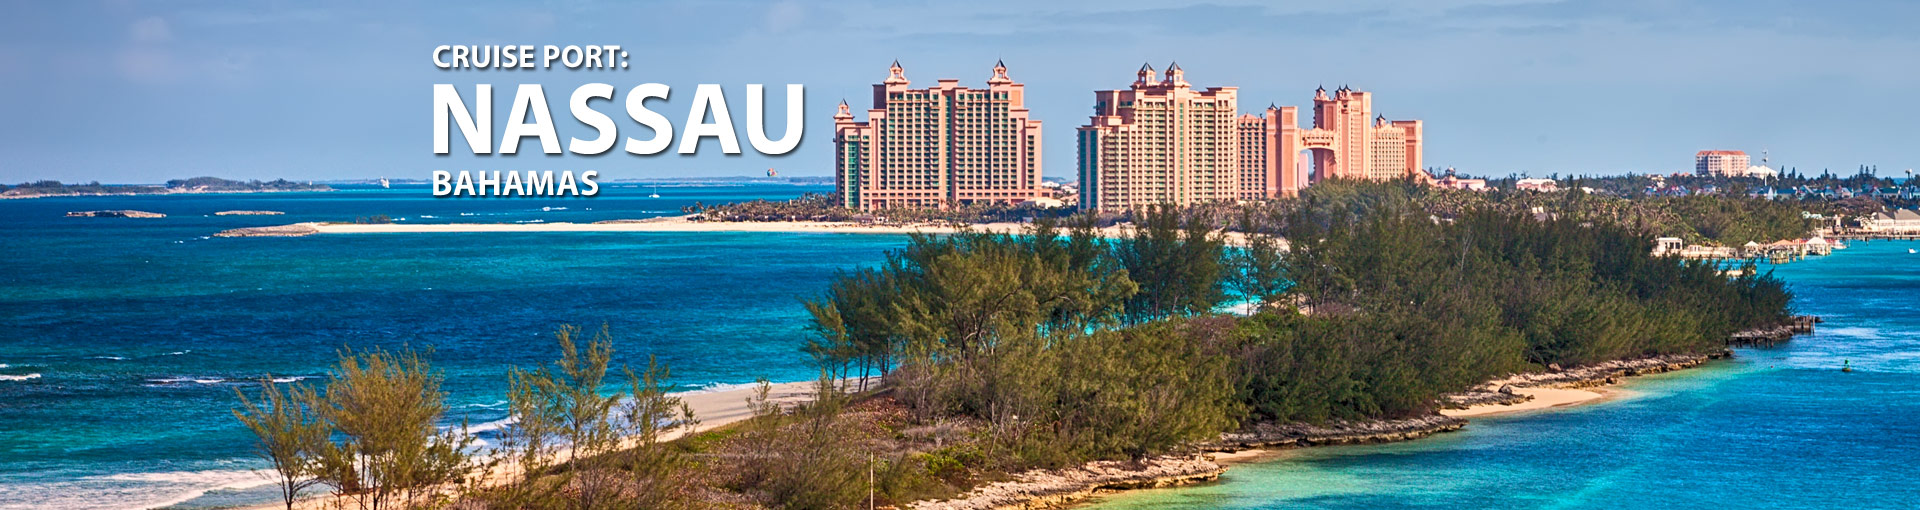 Nassau bahamas cruise port 2017 and 2018 cruises to nassau bahamas the cruise web - Cruise port nassau bahamas ...